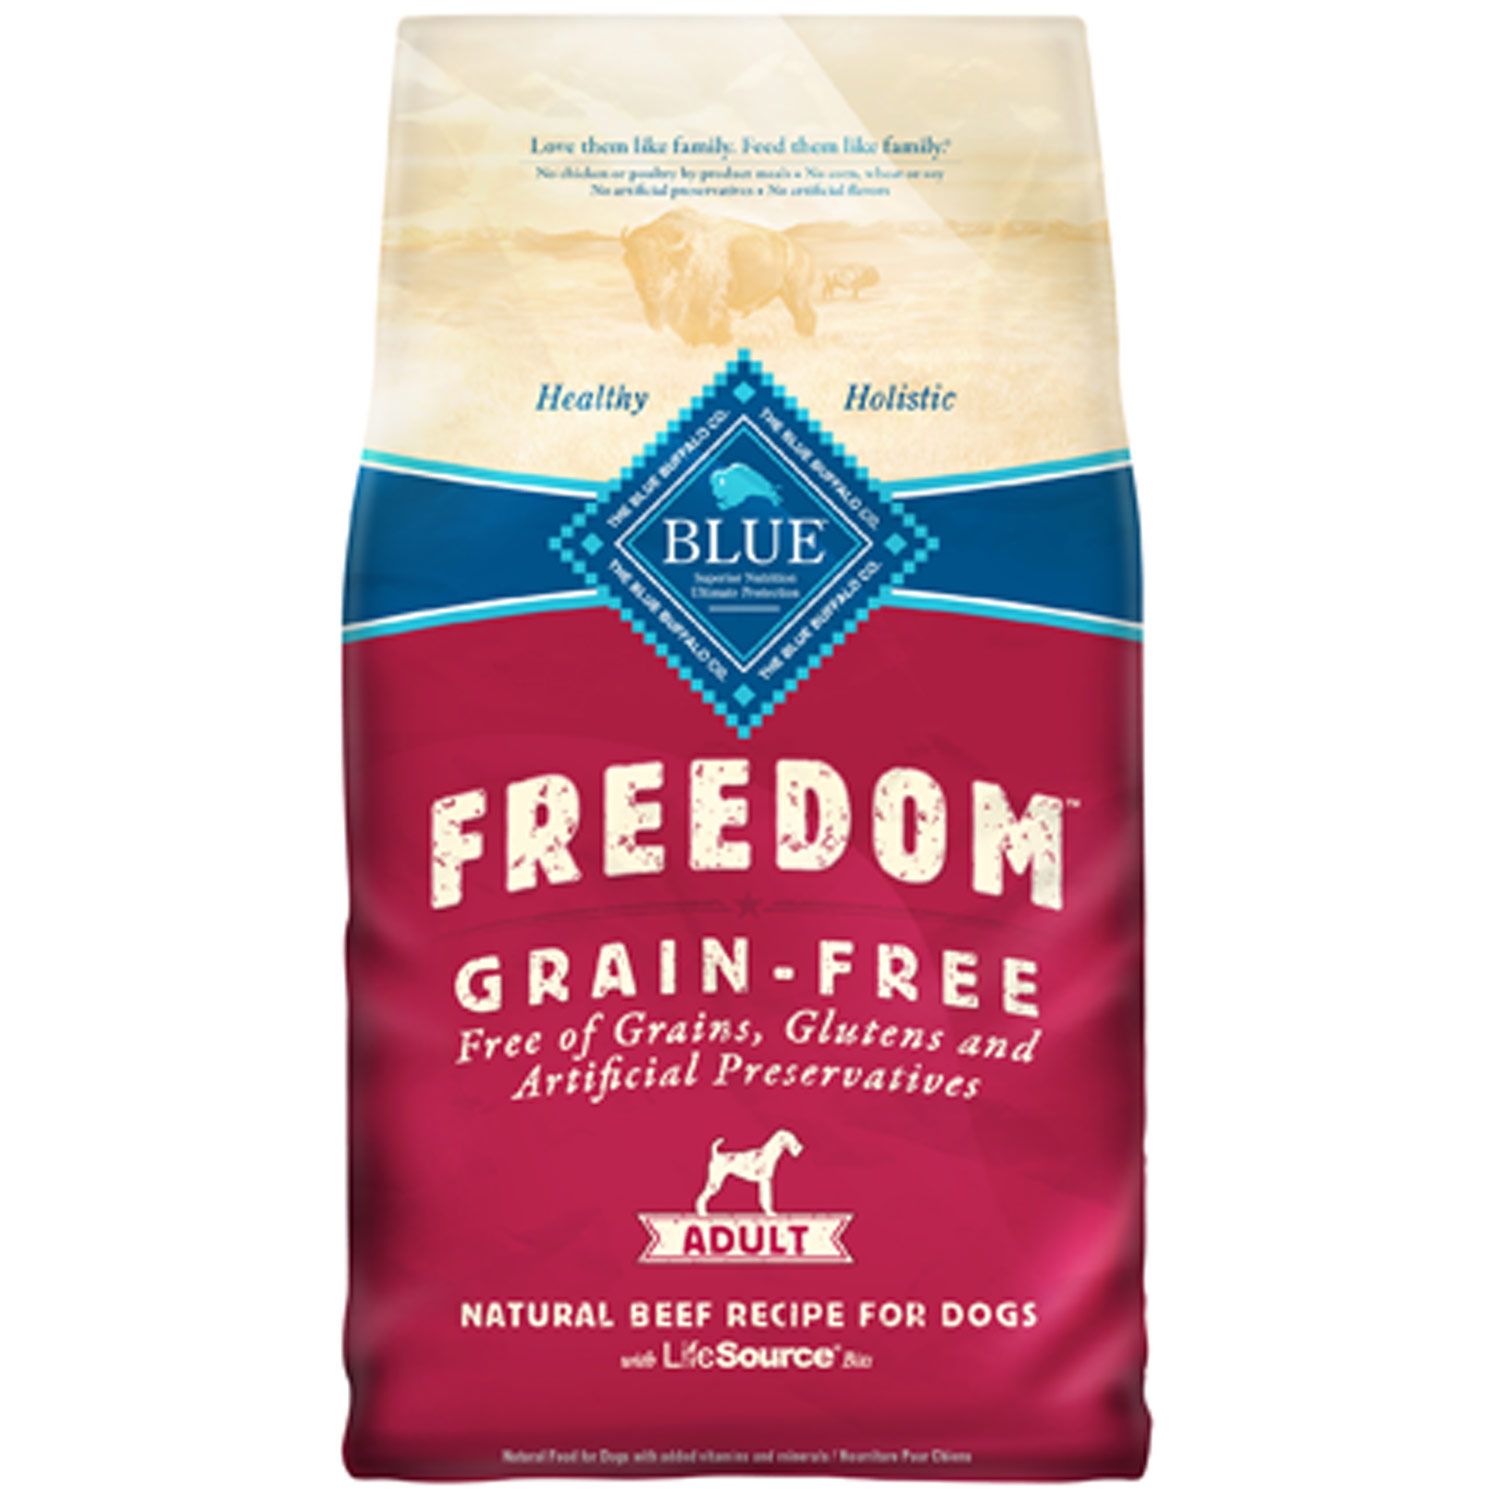 Blue Buffalo Beef Dog Food